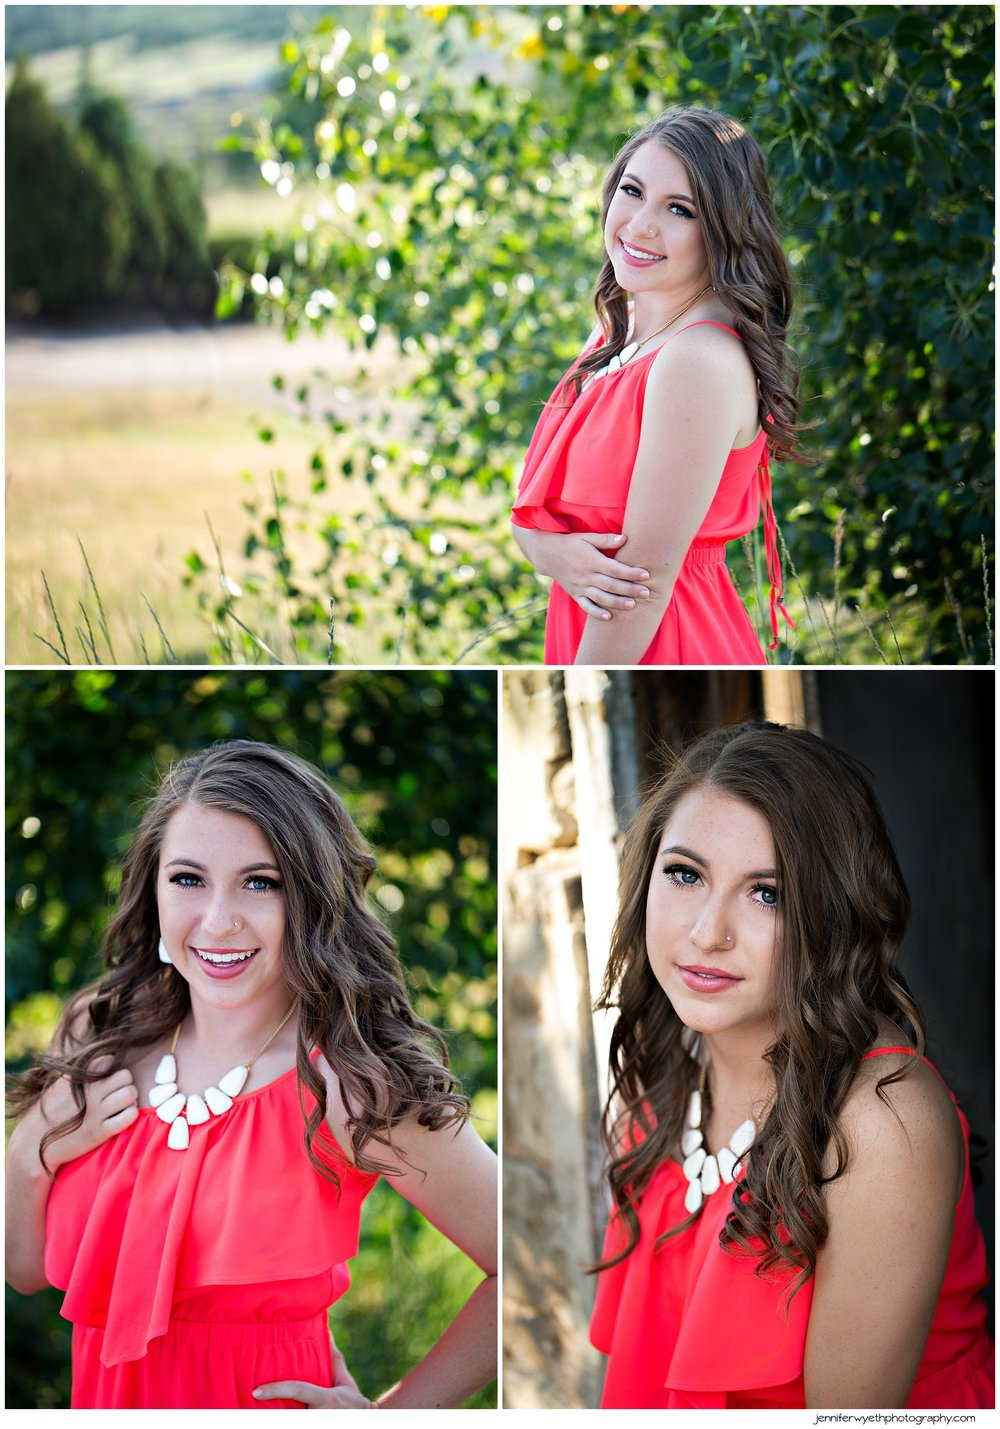 Jennifer-Wyeth-photography-senior-pictures-colorado-springs-photographer_0191.jpg